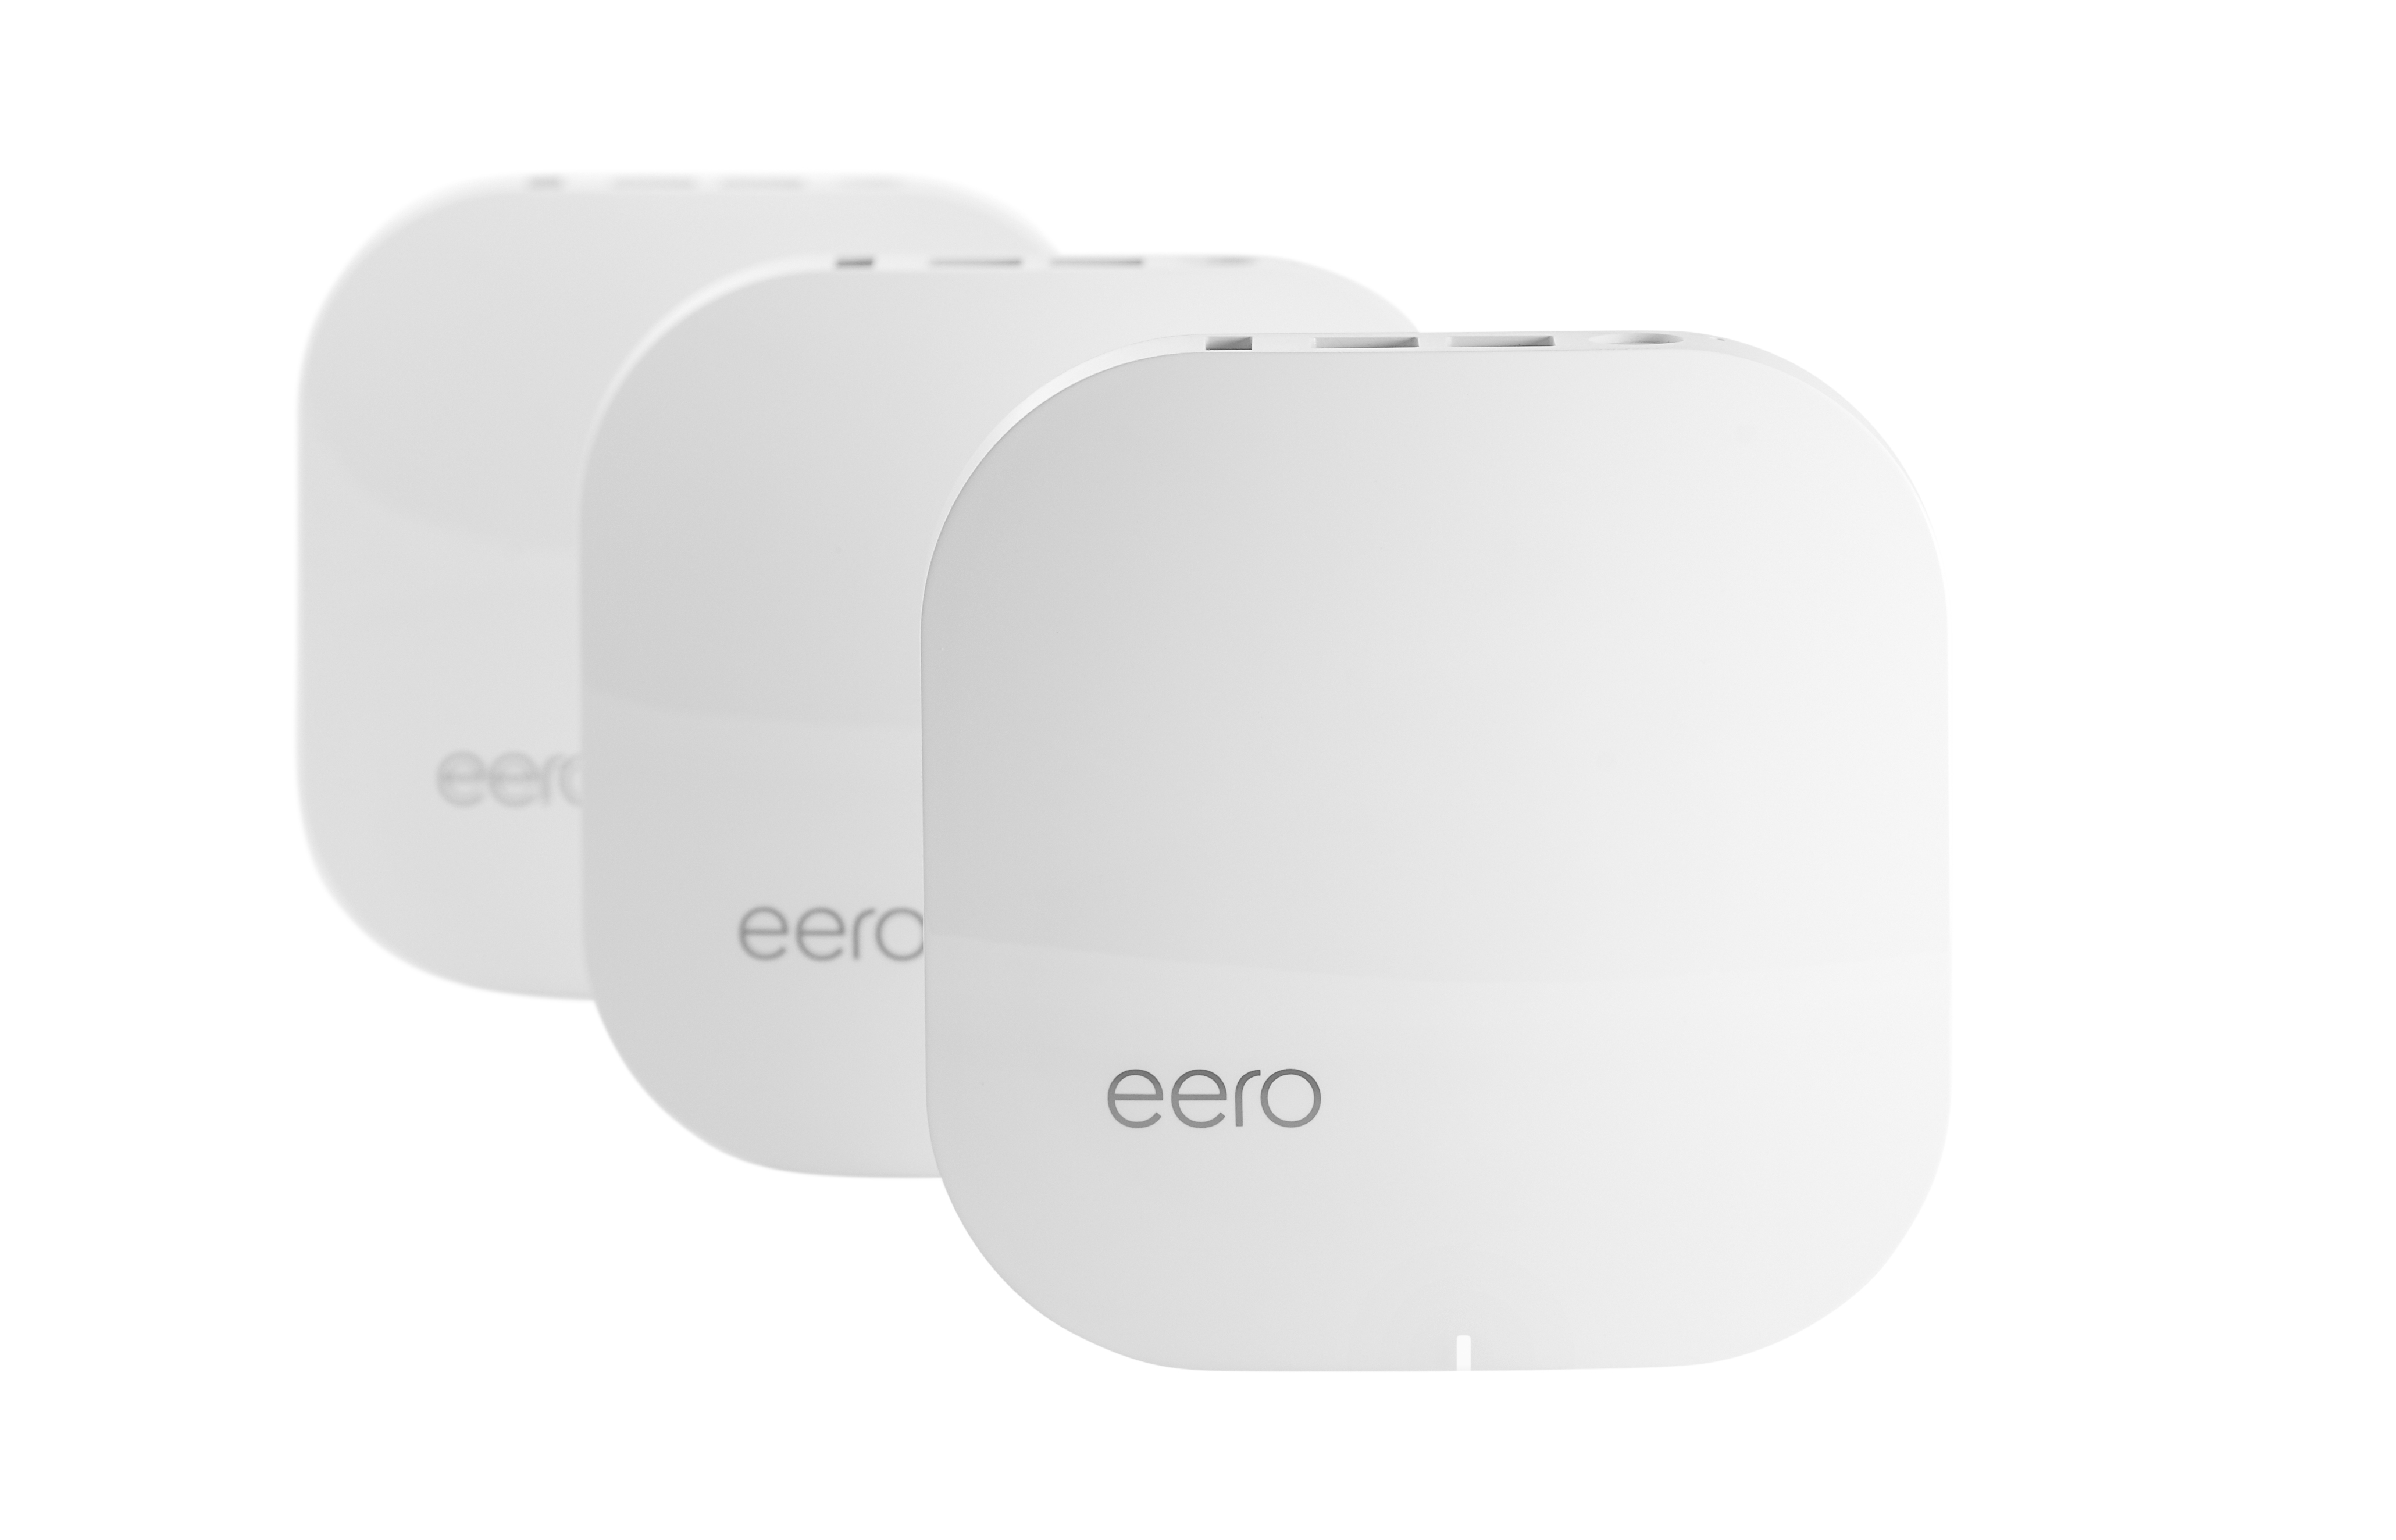 eero inc  Secures $50M in Growth Funding Led by Menlo